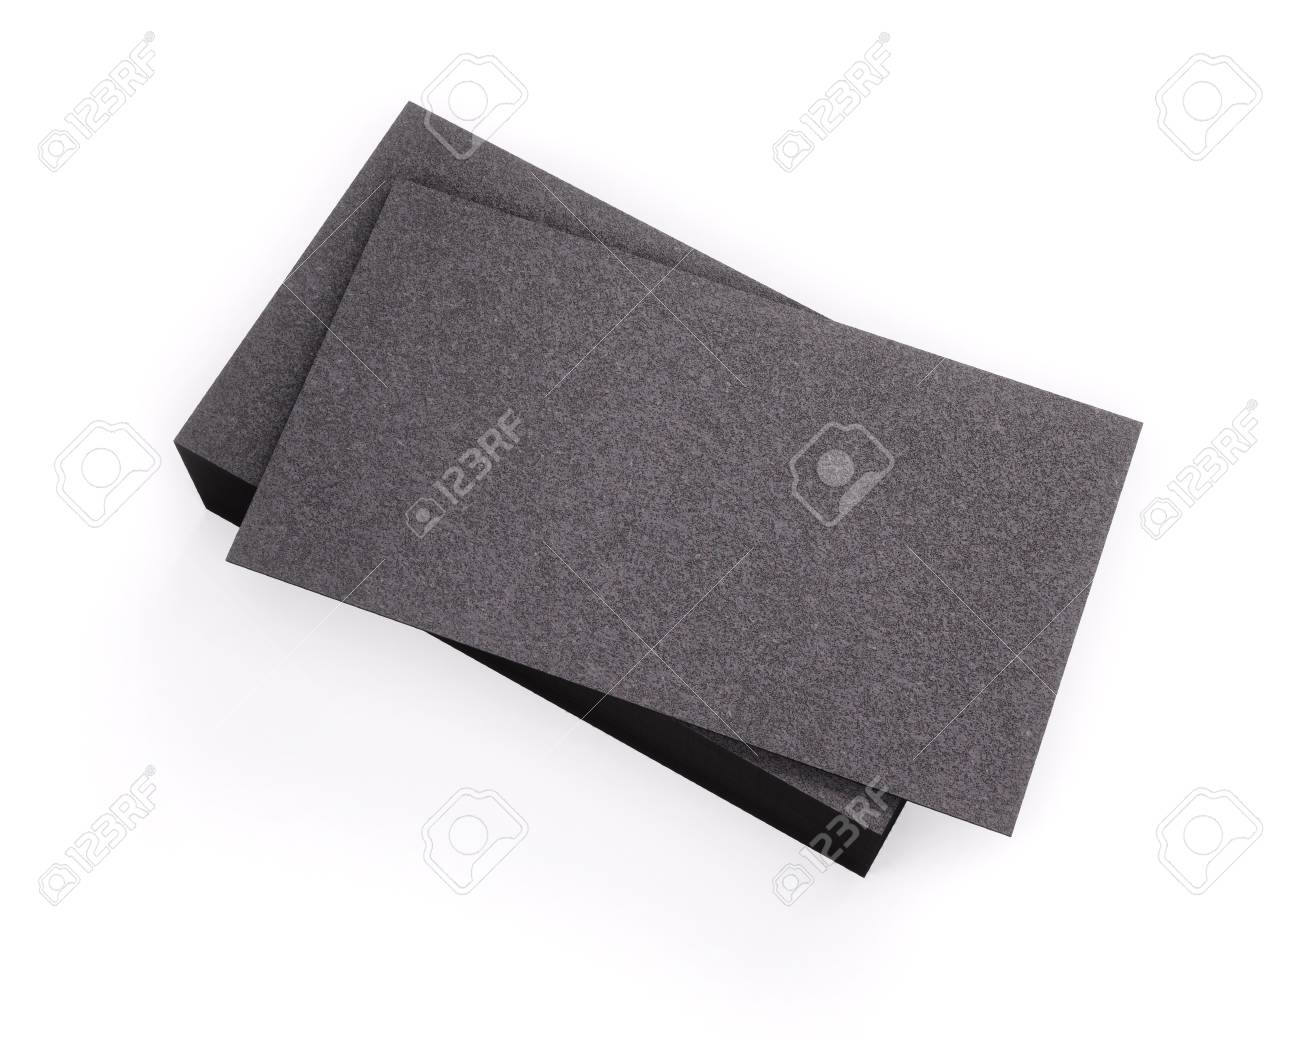 3D Rendering Of Business Card Blank Template Black Cards Isolated On White Background Stock